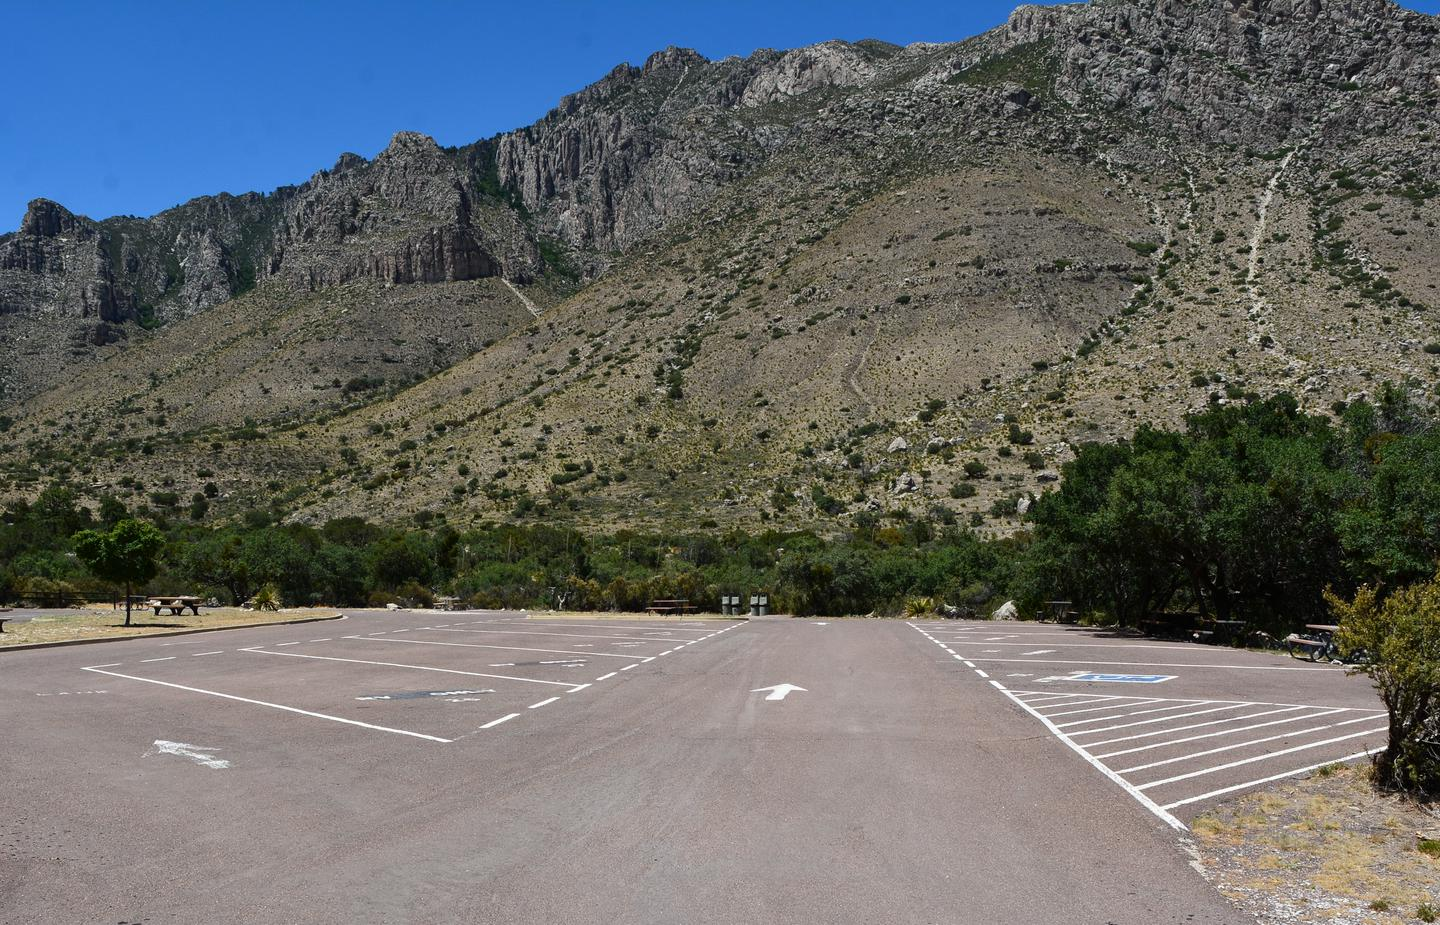 A view of RV campground parking area with sites 21-30 shown.  Site 24 is located along the right side of travel lane.  Mountain views in the background.A view of RV campground parking area with sites 21-30 shown.  Site 24 is located along the right side of travel lane.